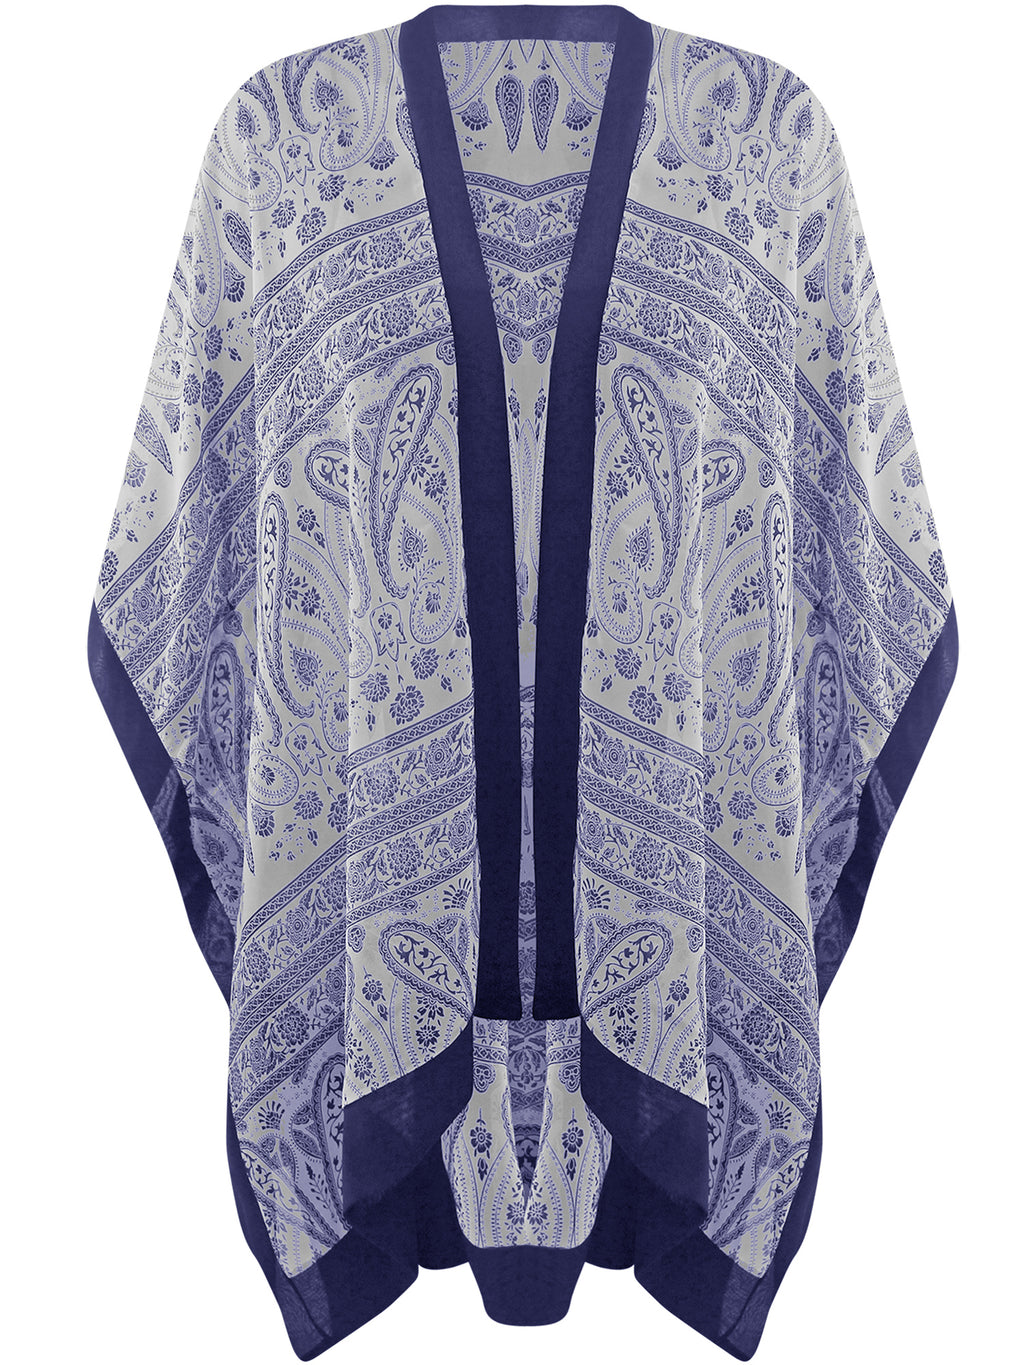 Navy & White Sheer Chiffon Paisley Beach Cover Up